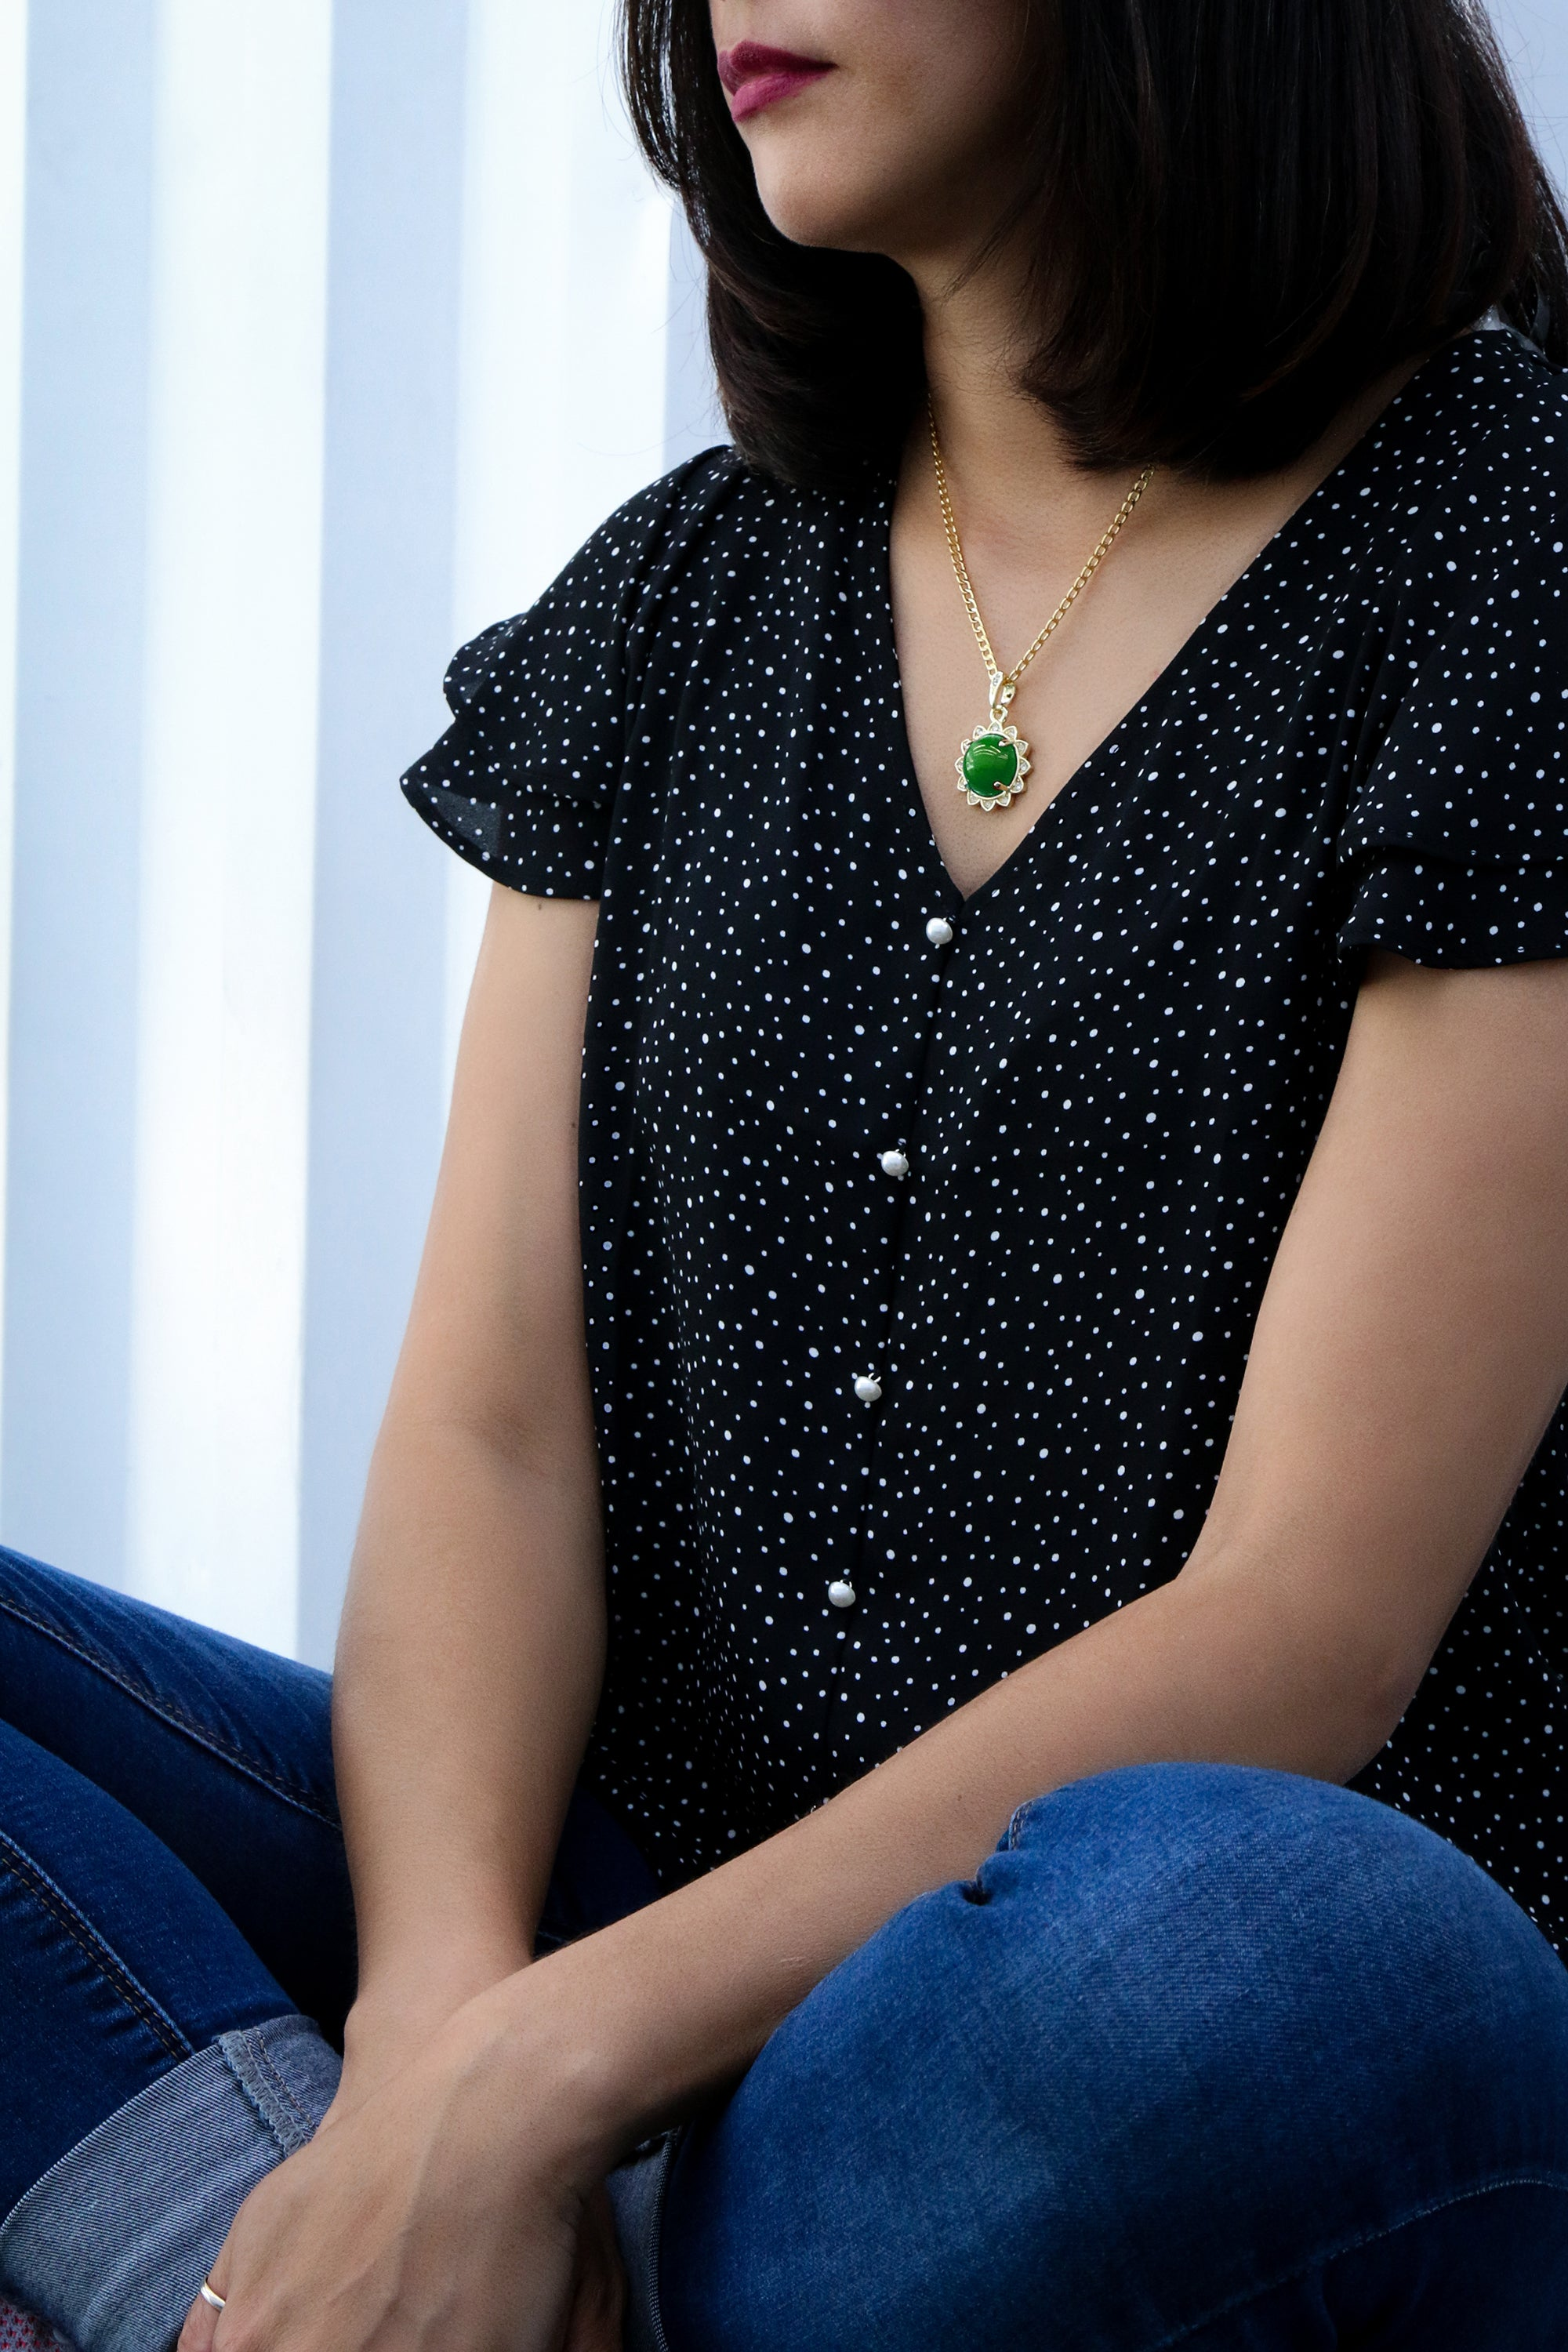 Green Round Women's Jade Chain Pendant Necklace